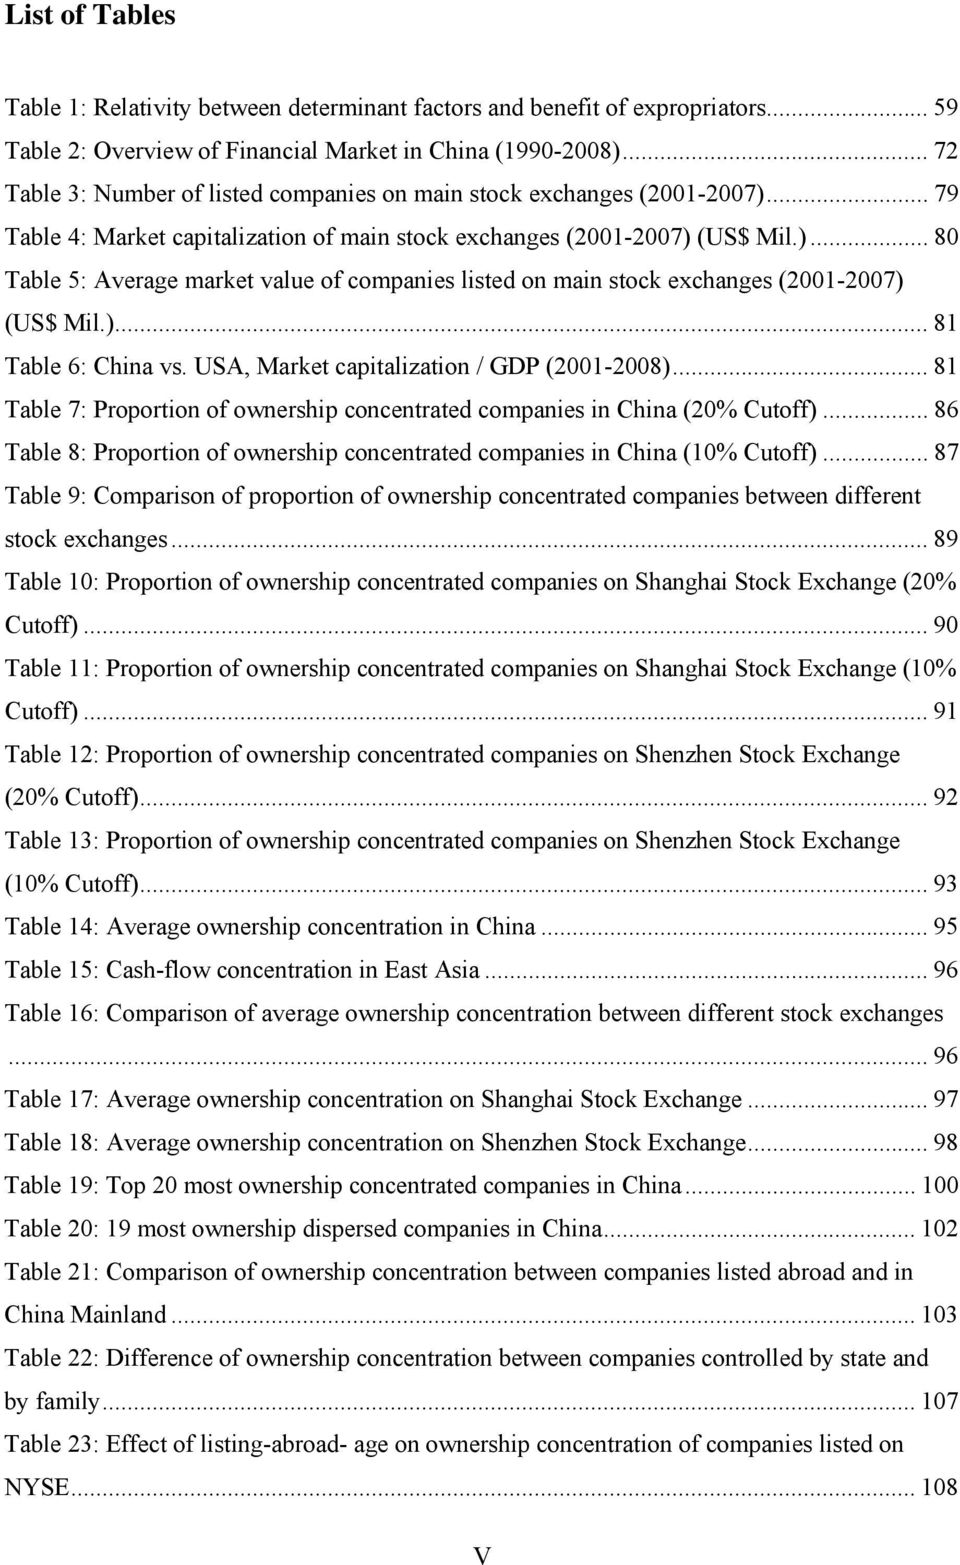 )... 8 Table 6: China v. USA, Marke capializaion / GDP (200-2008)... 8 Table 7: Proporion of ownerhip concenraed companie in China (20% Cuoff).